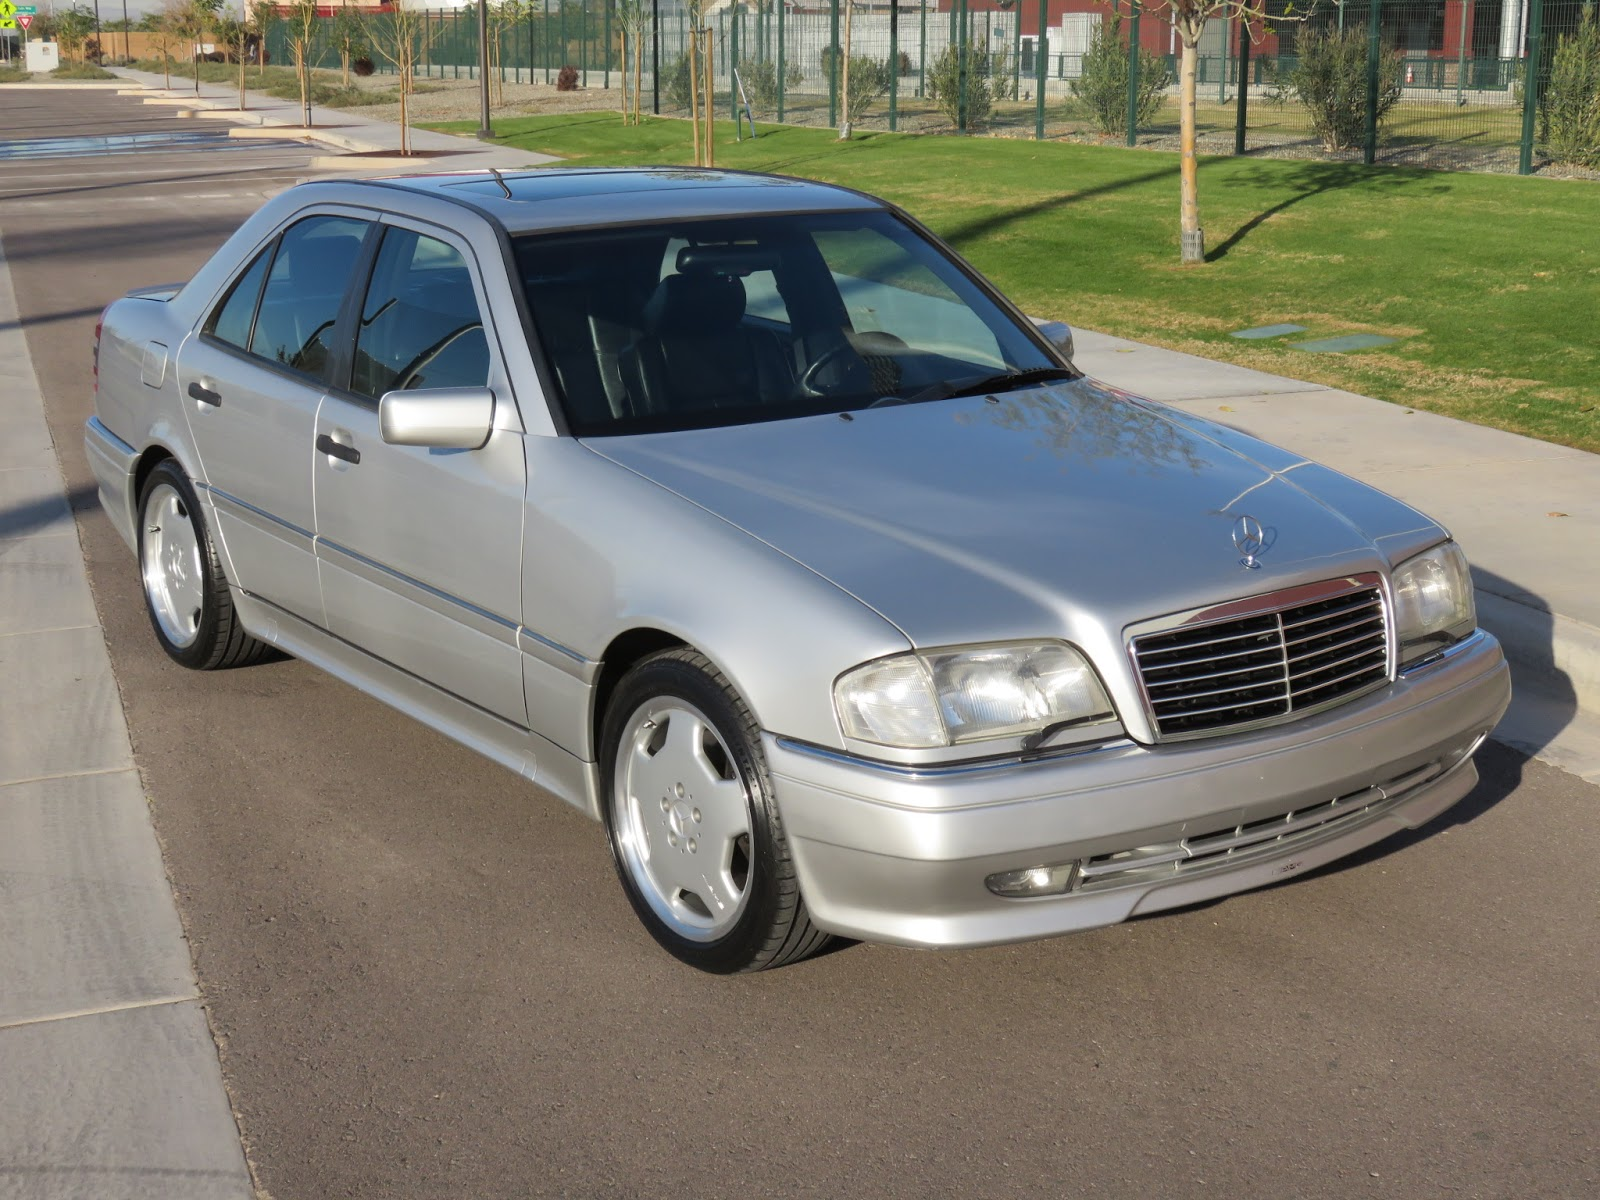 1996 mercedes benz w202 c36 amg benztuning for 1996 mercedes benz c class